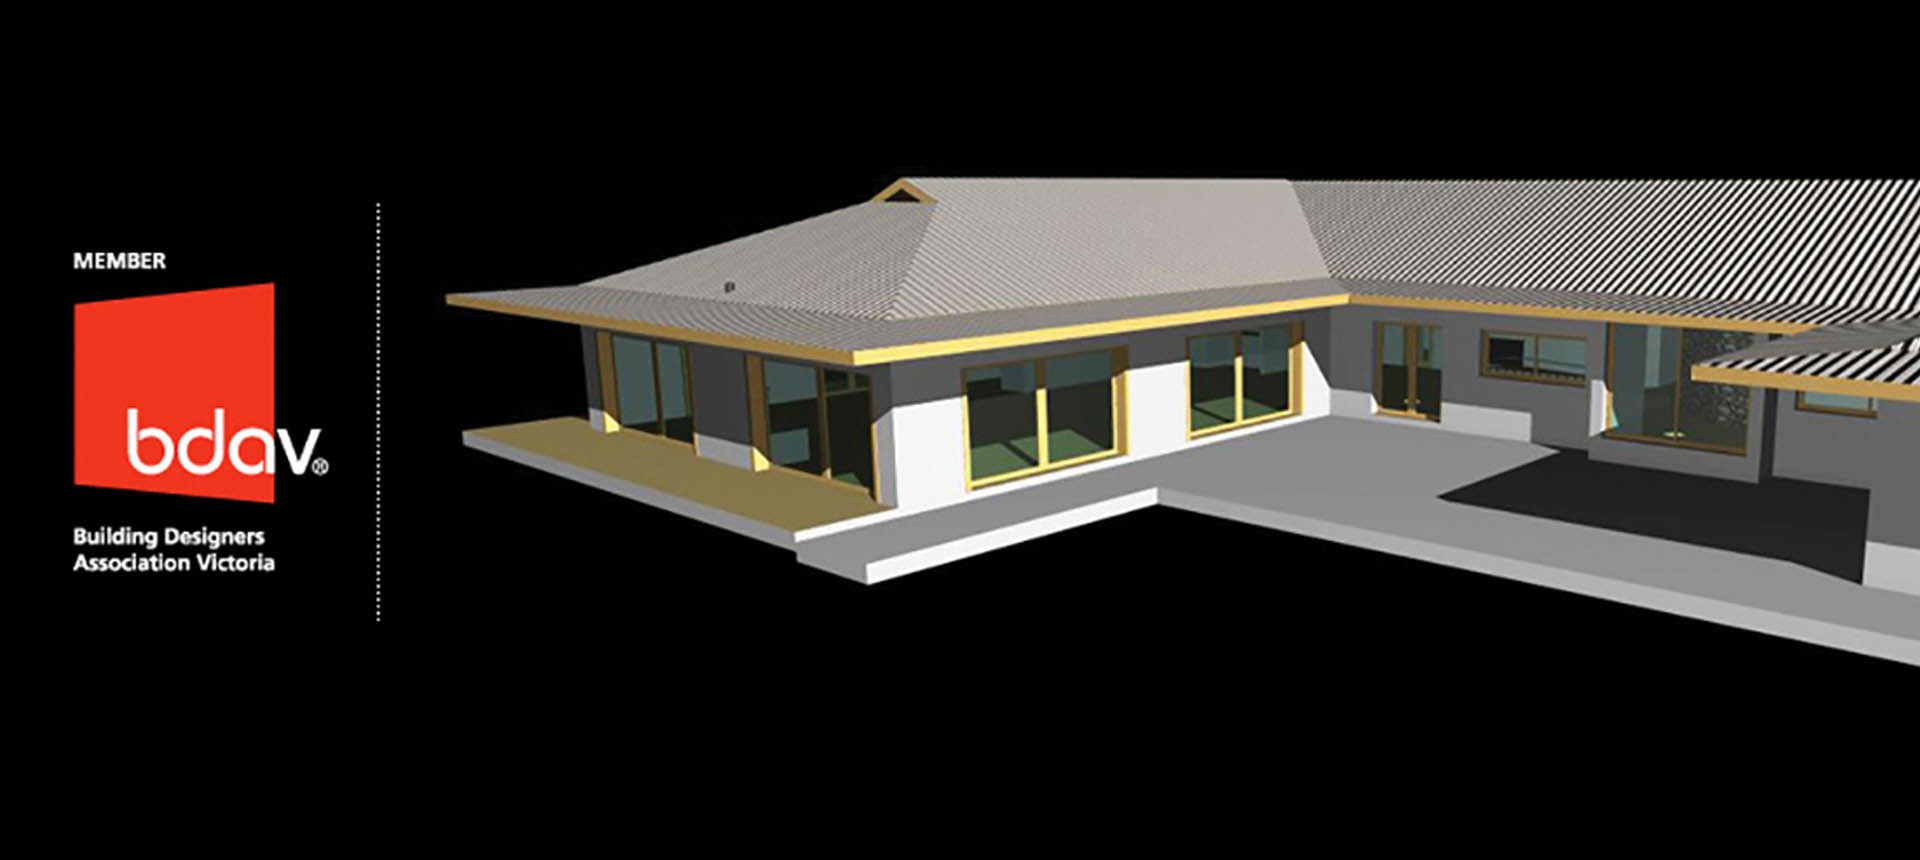 3D image of a house